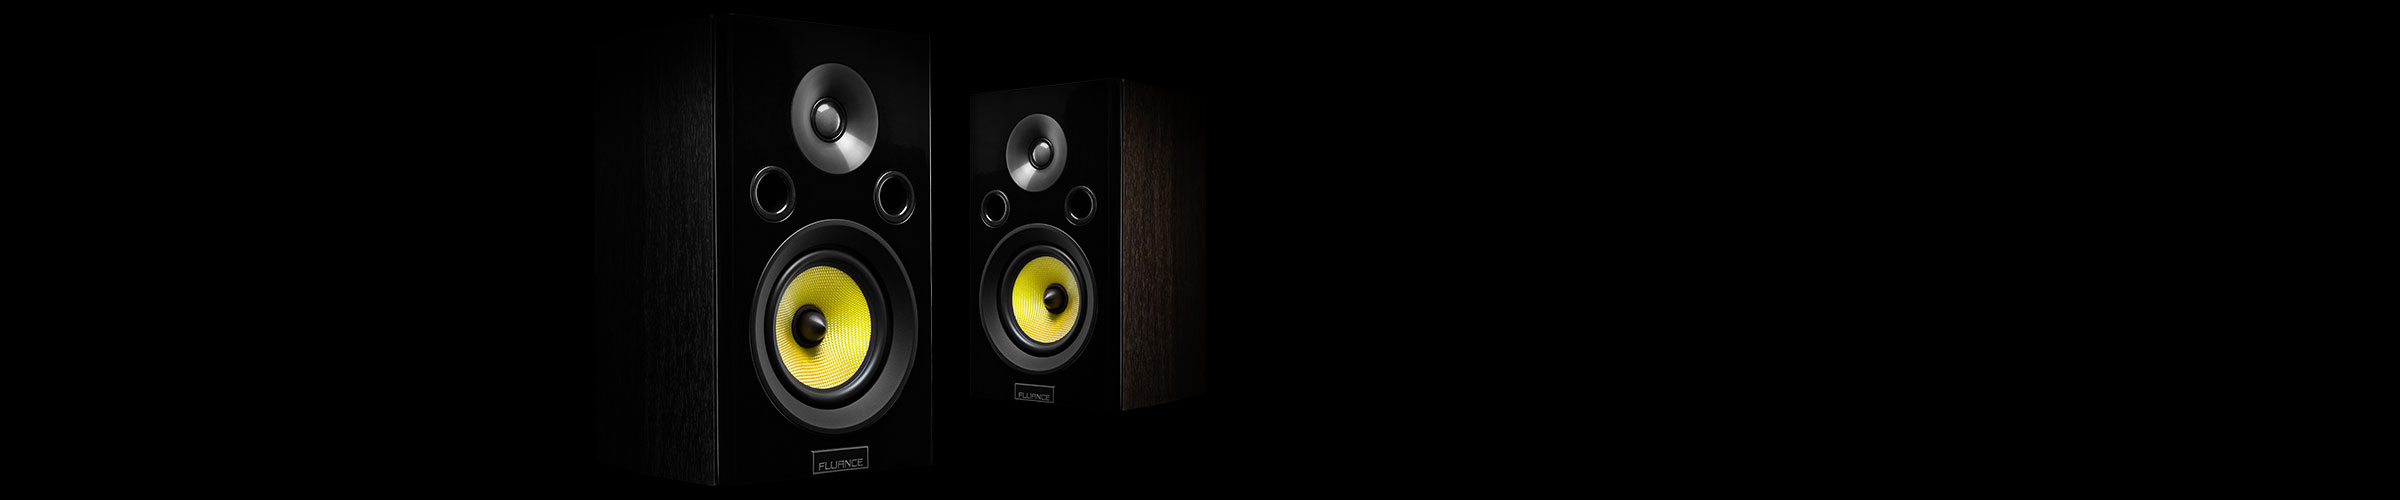 Fluance signature series surround sound speakers